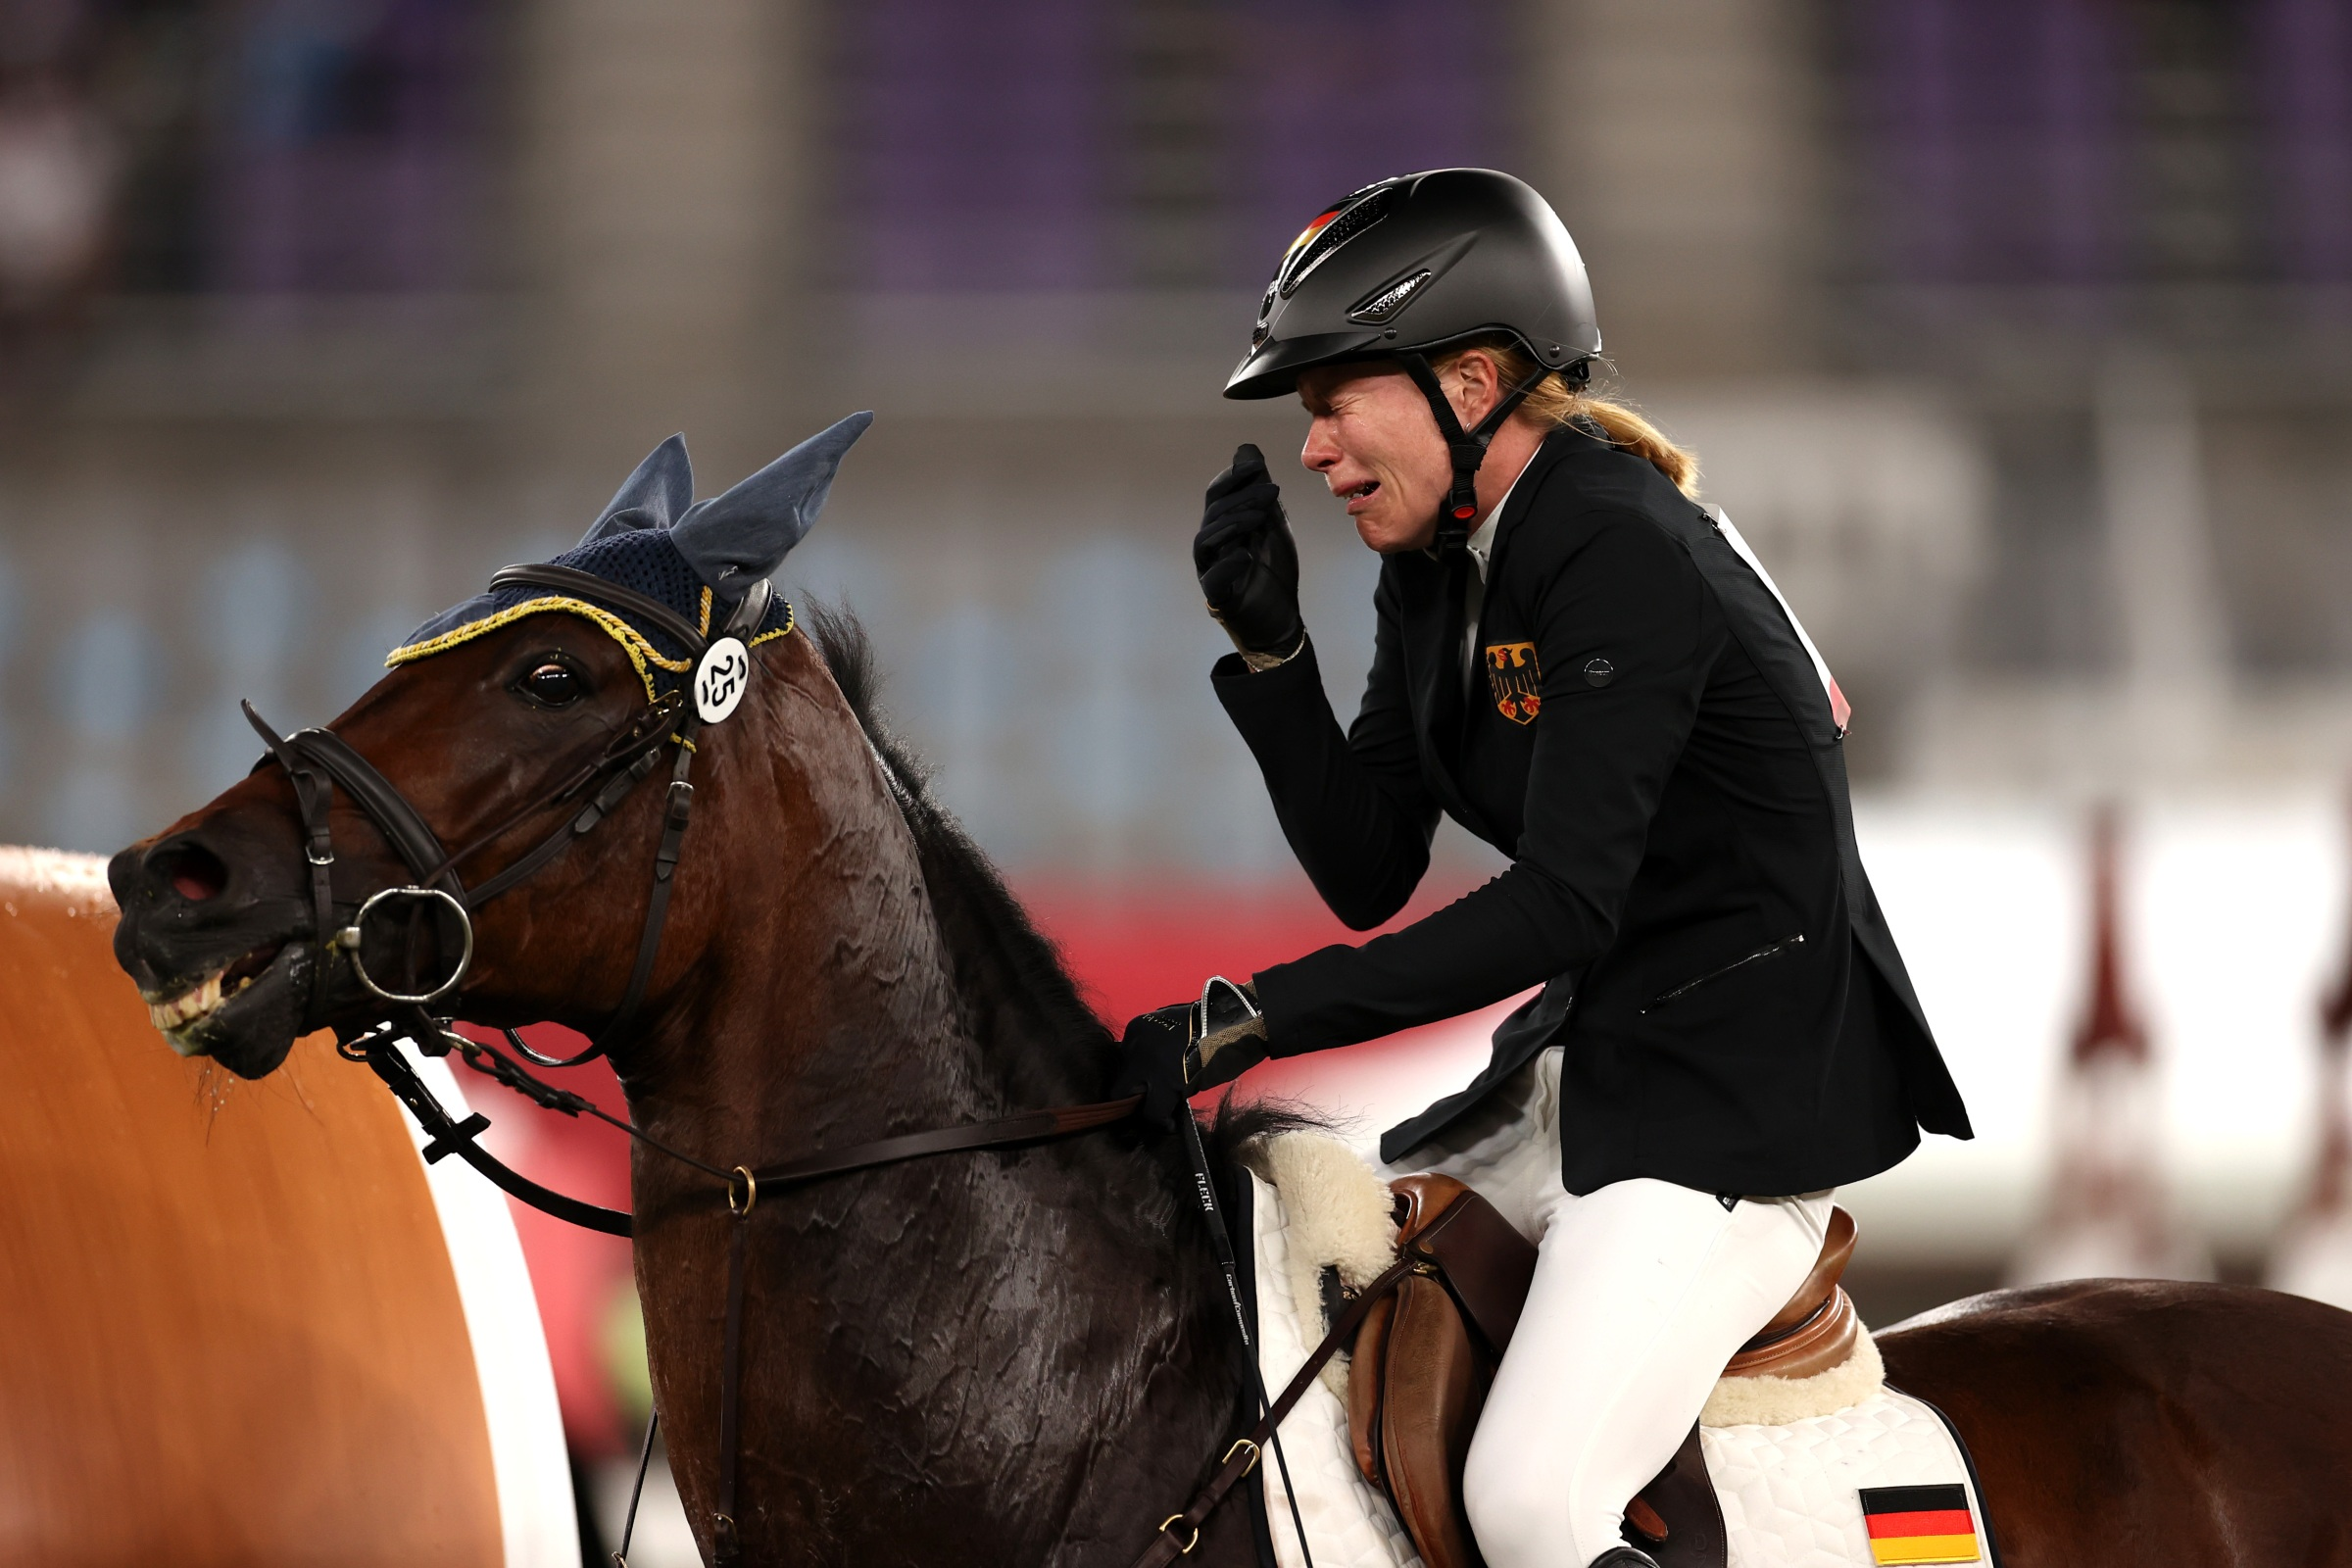 CHOFU, JAPAN - AUGUST 06: Annika Schleu of Team Germany looks dejected following her run in the Riding Show Jumping of the Women's Modern Pentathlon on day fourteen of the Tokyo 2020 Olympic Games